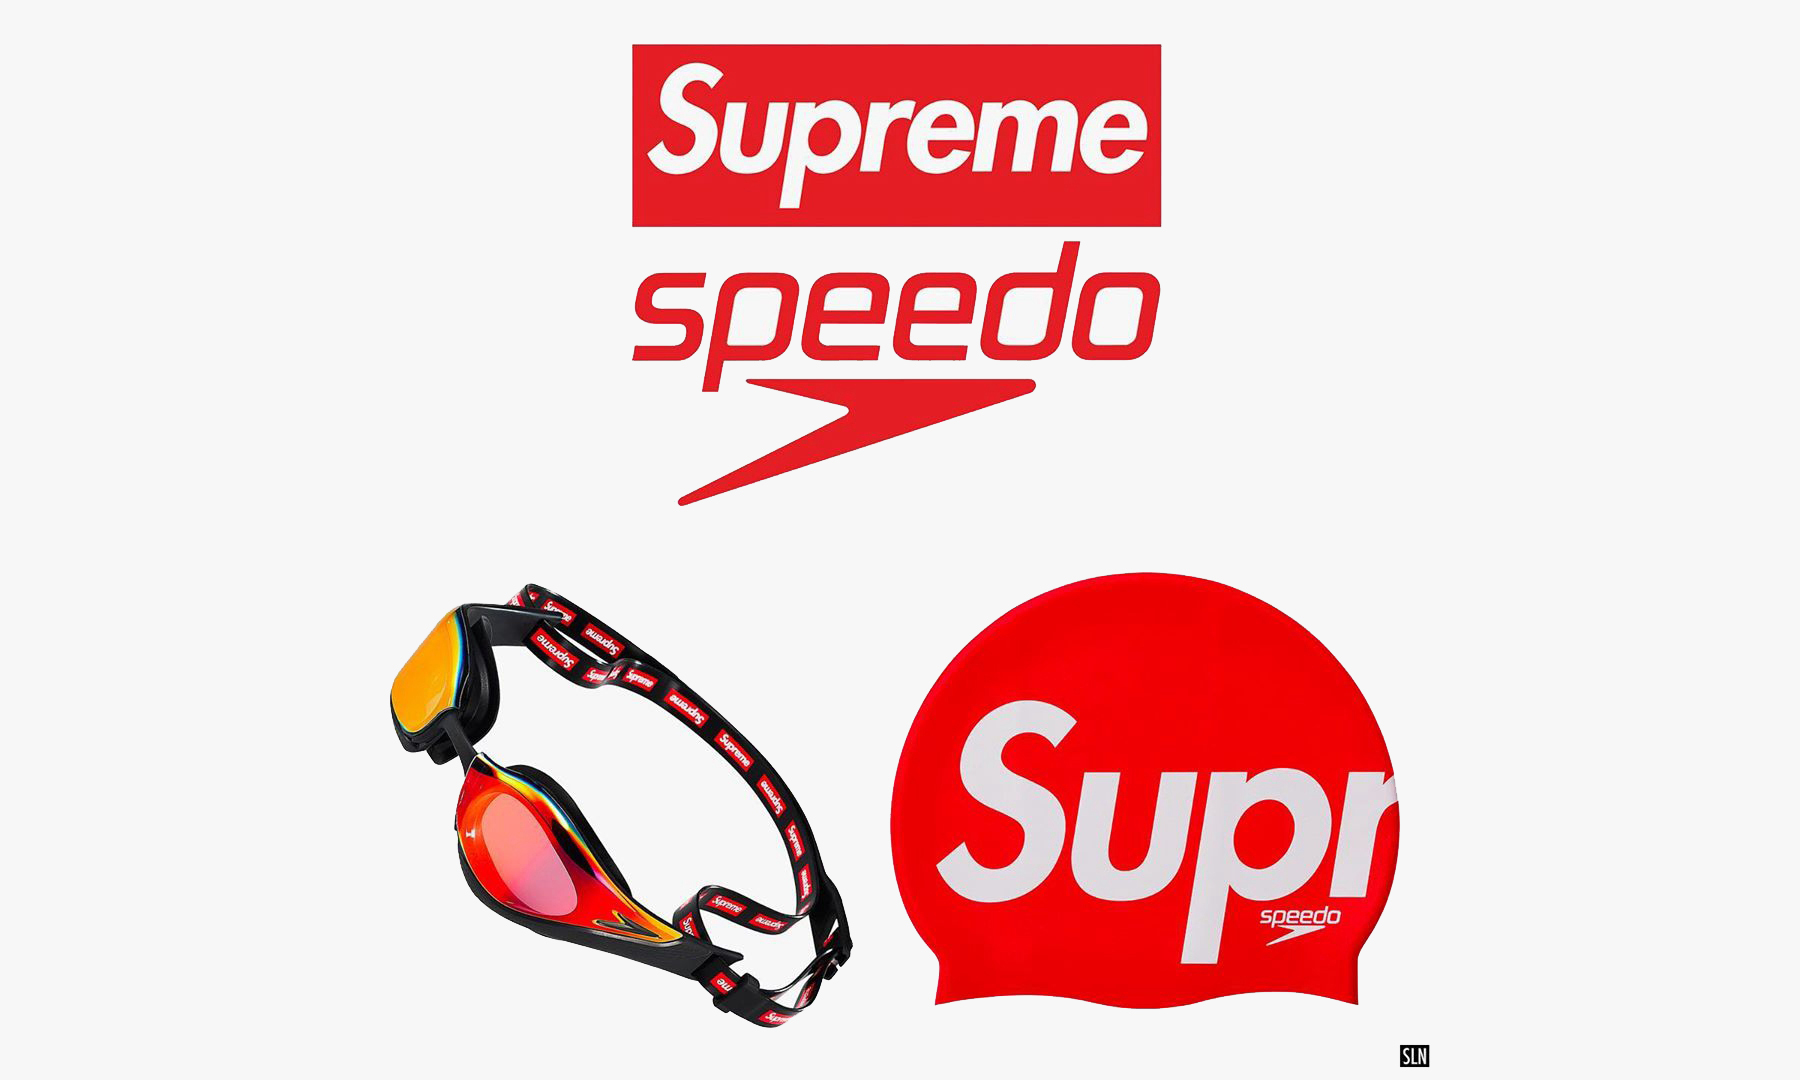 Speedo x Supreme 合作系列本周正式登场